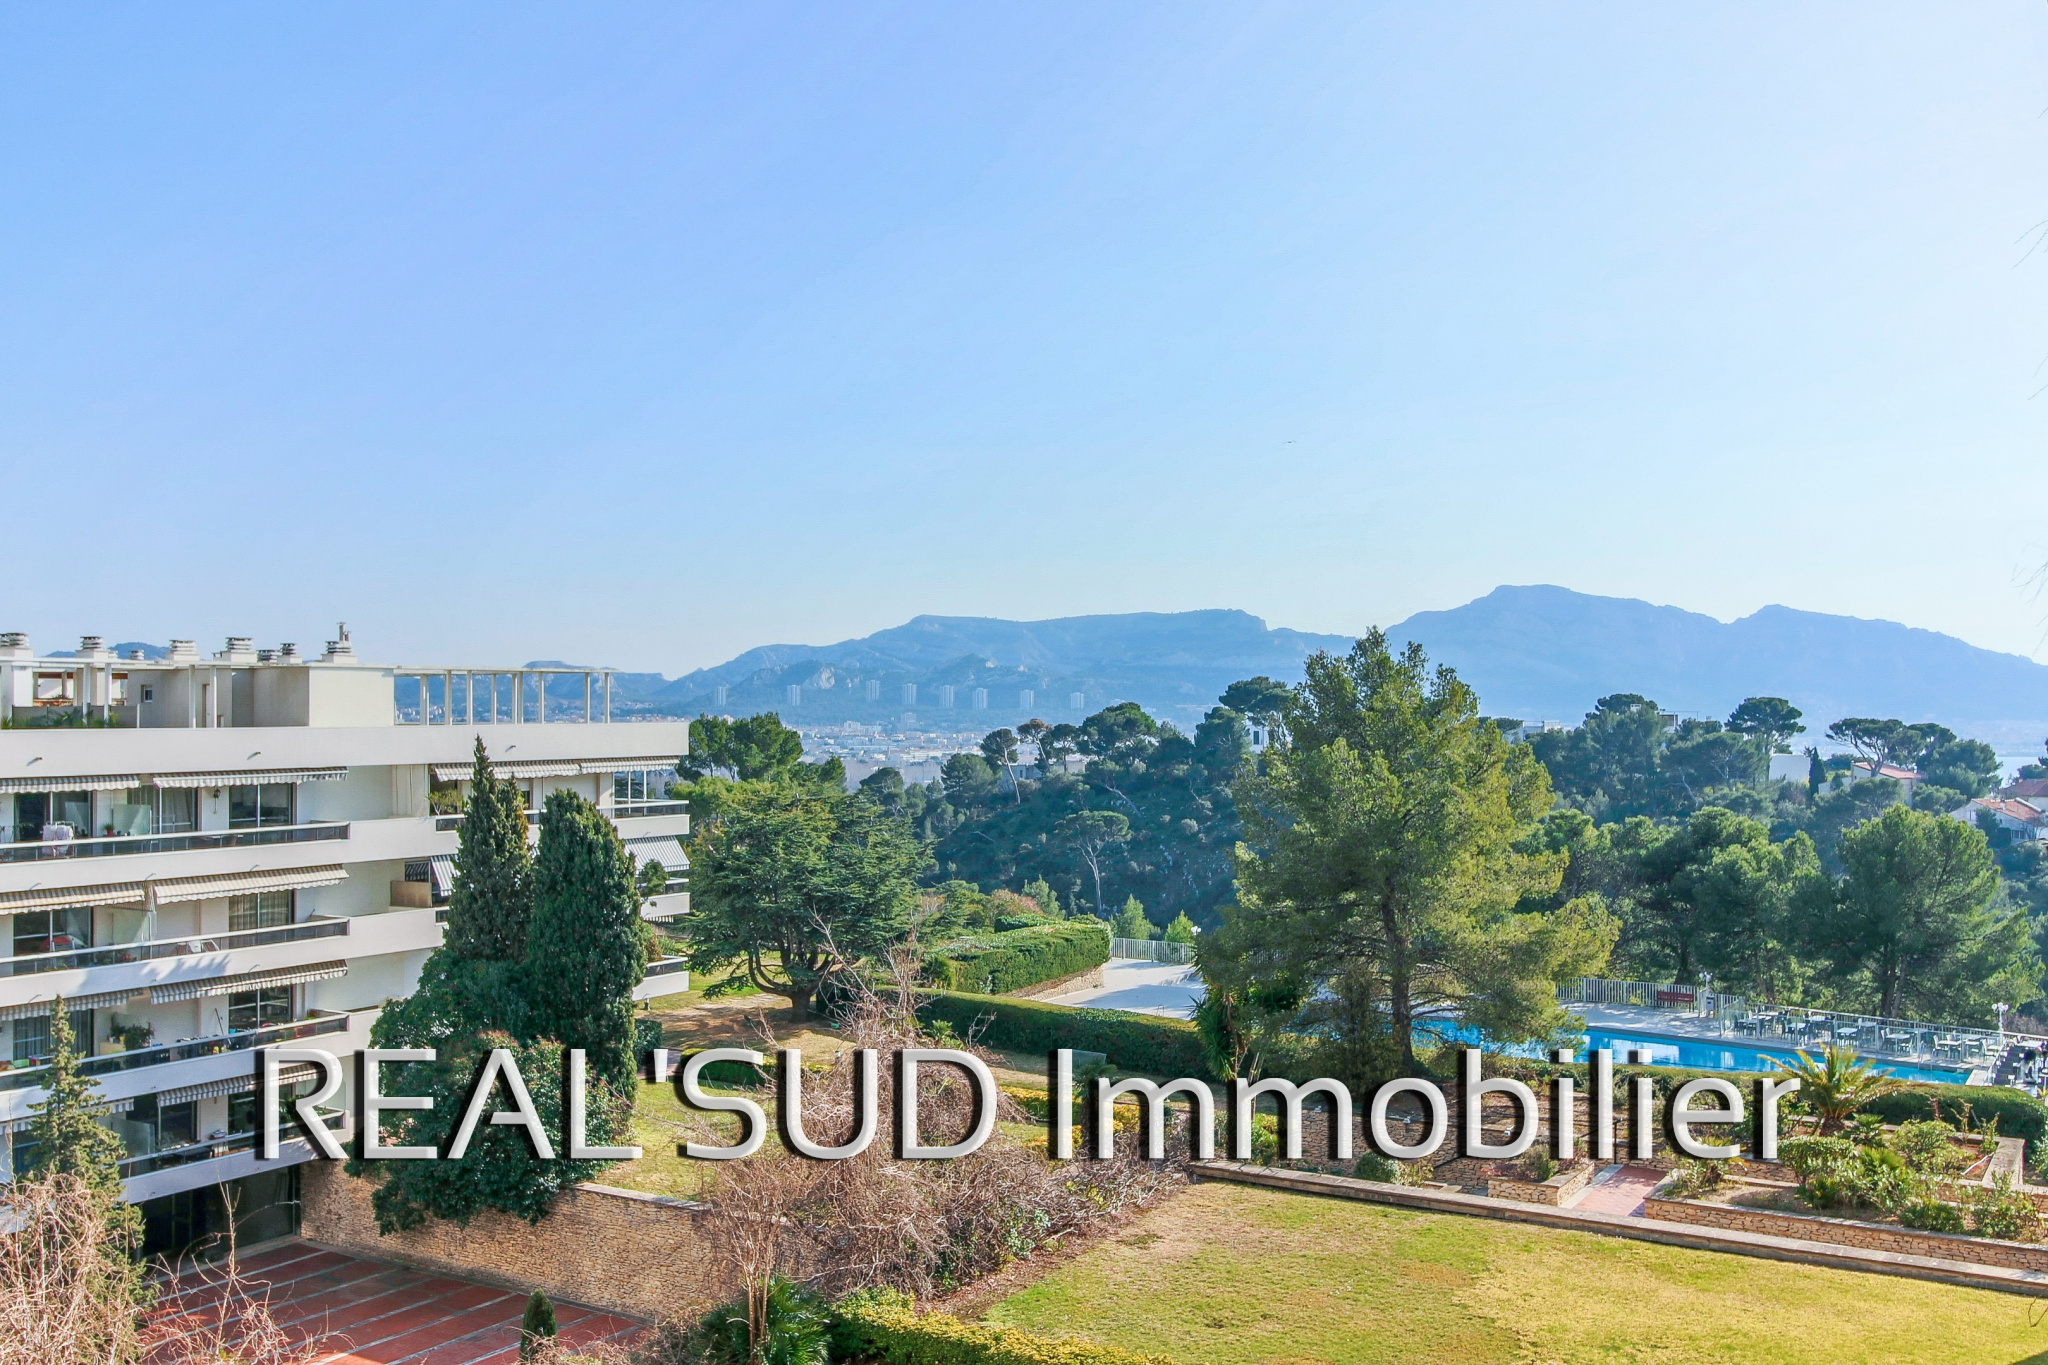 Vente marseille 13008 grand t3 r sidence standing avec piscine - Residence avec piscine marseille ...